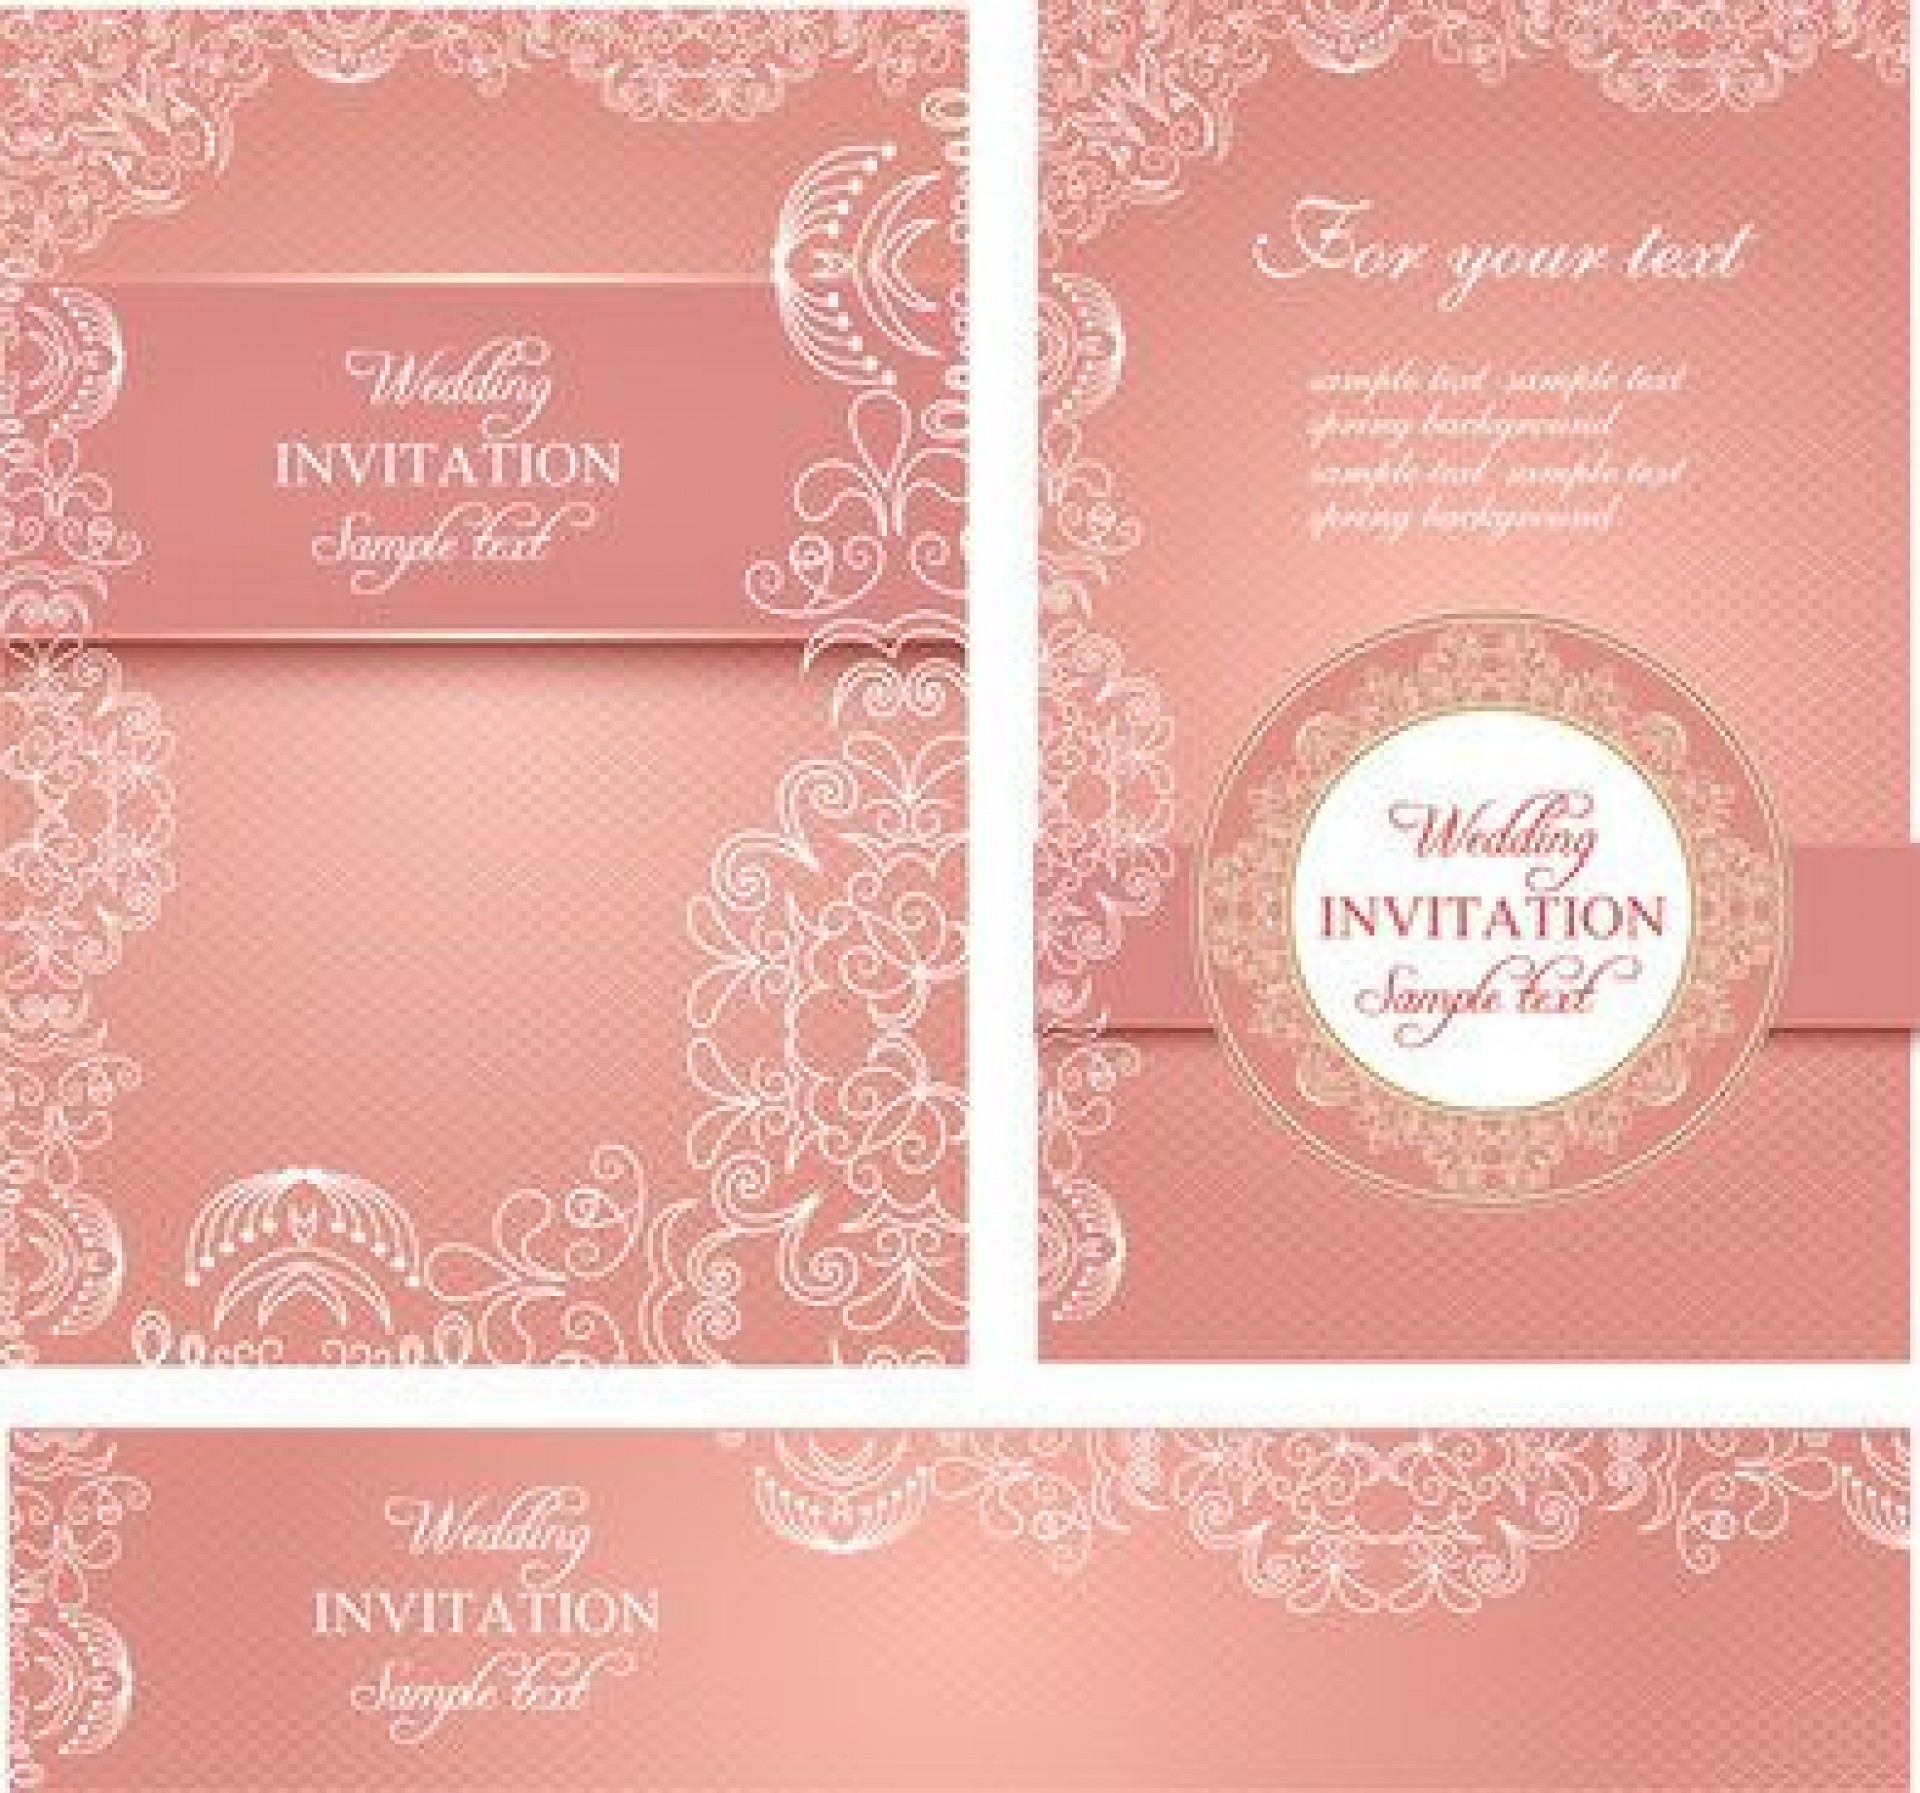 008 Unbelievable Free Download Marriage Invitation Template Highest Clarity  Card Design Psd After Effect1920